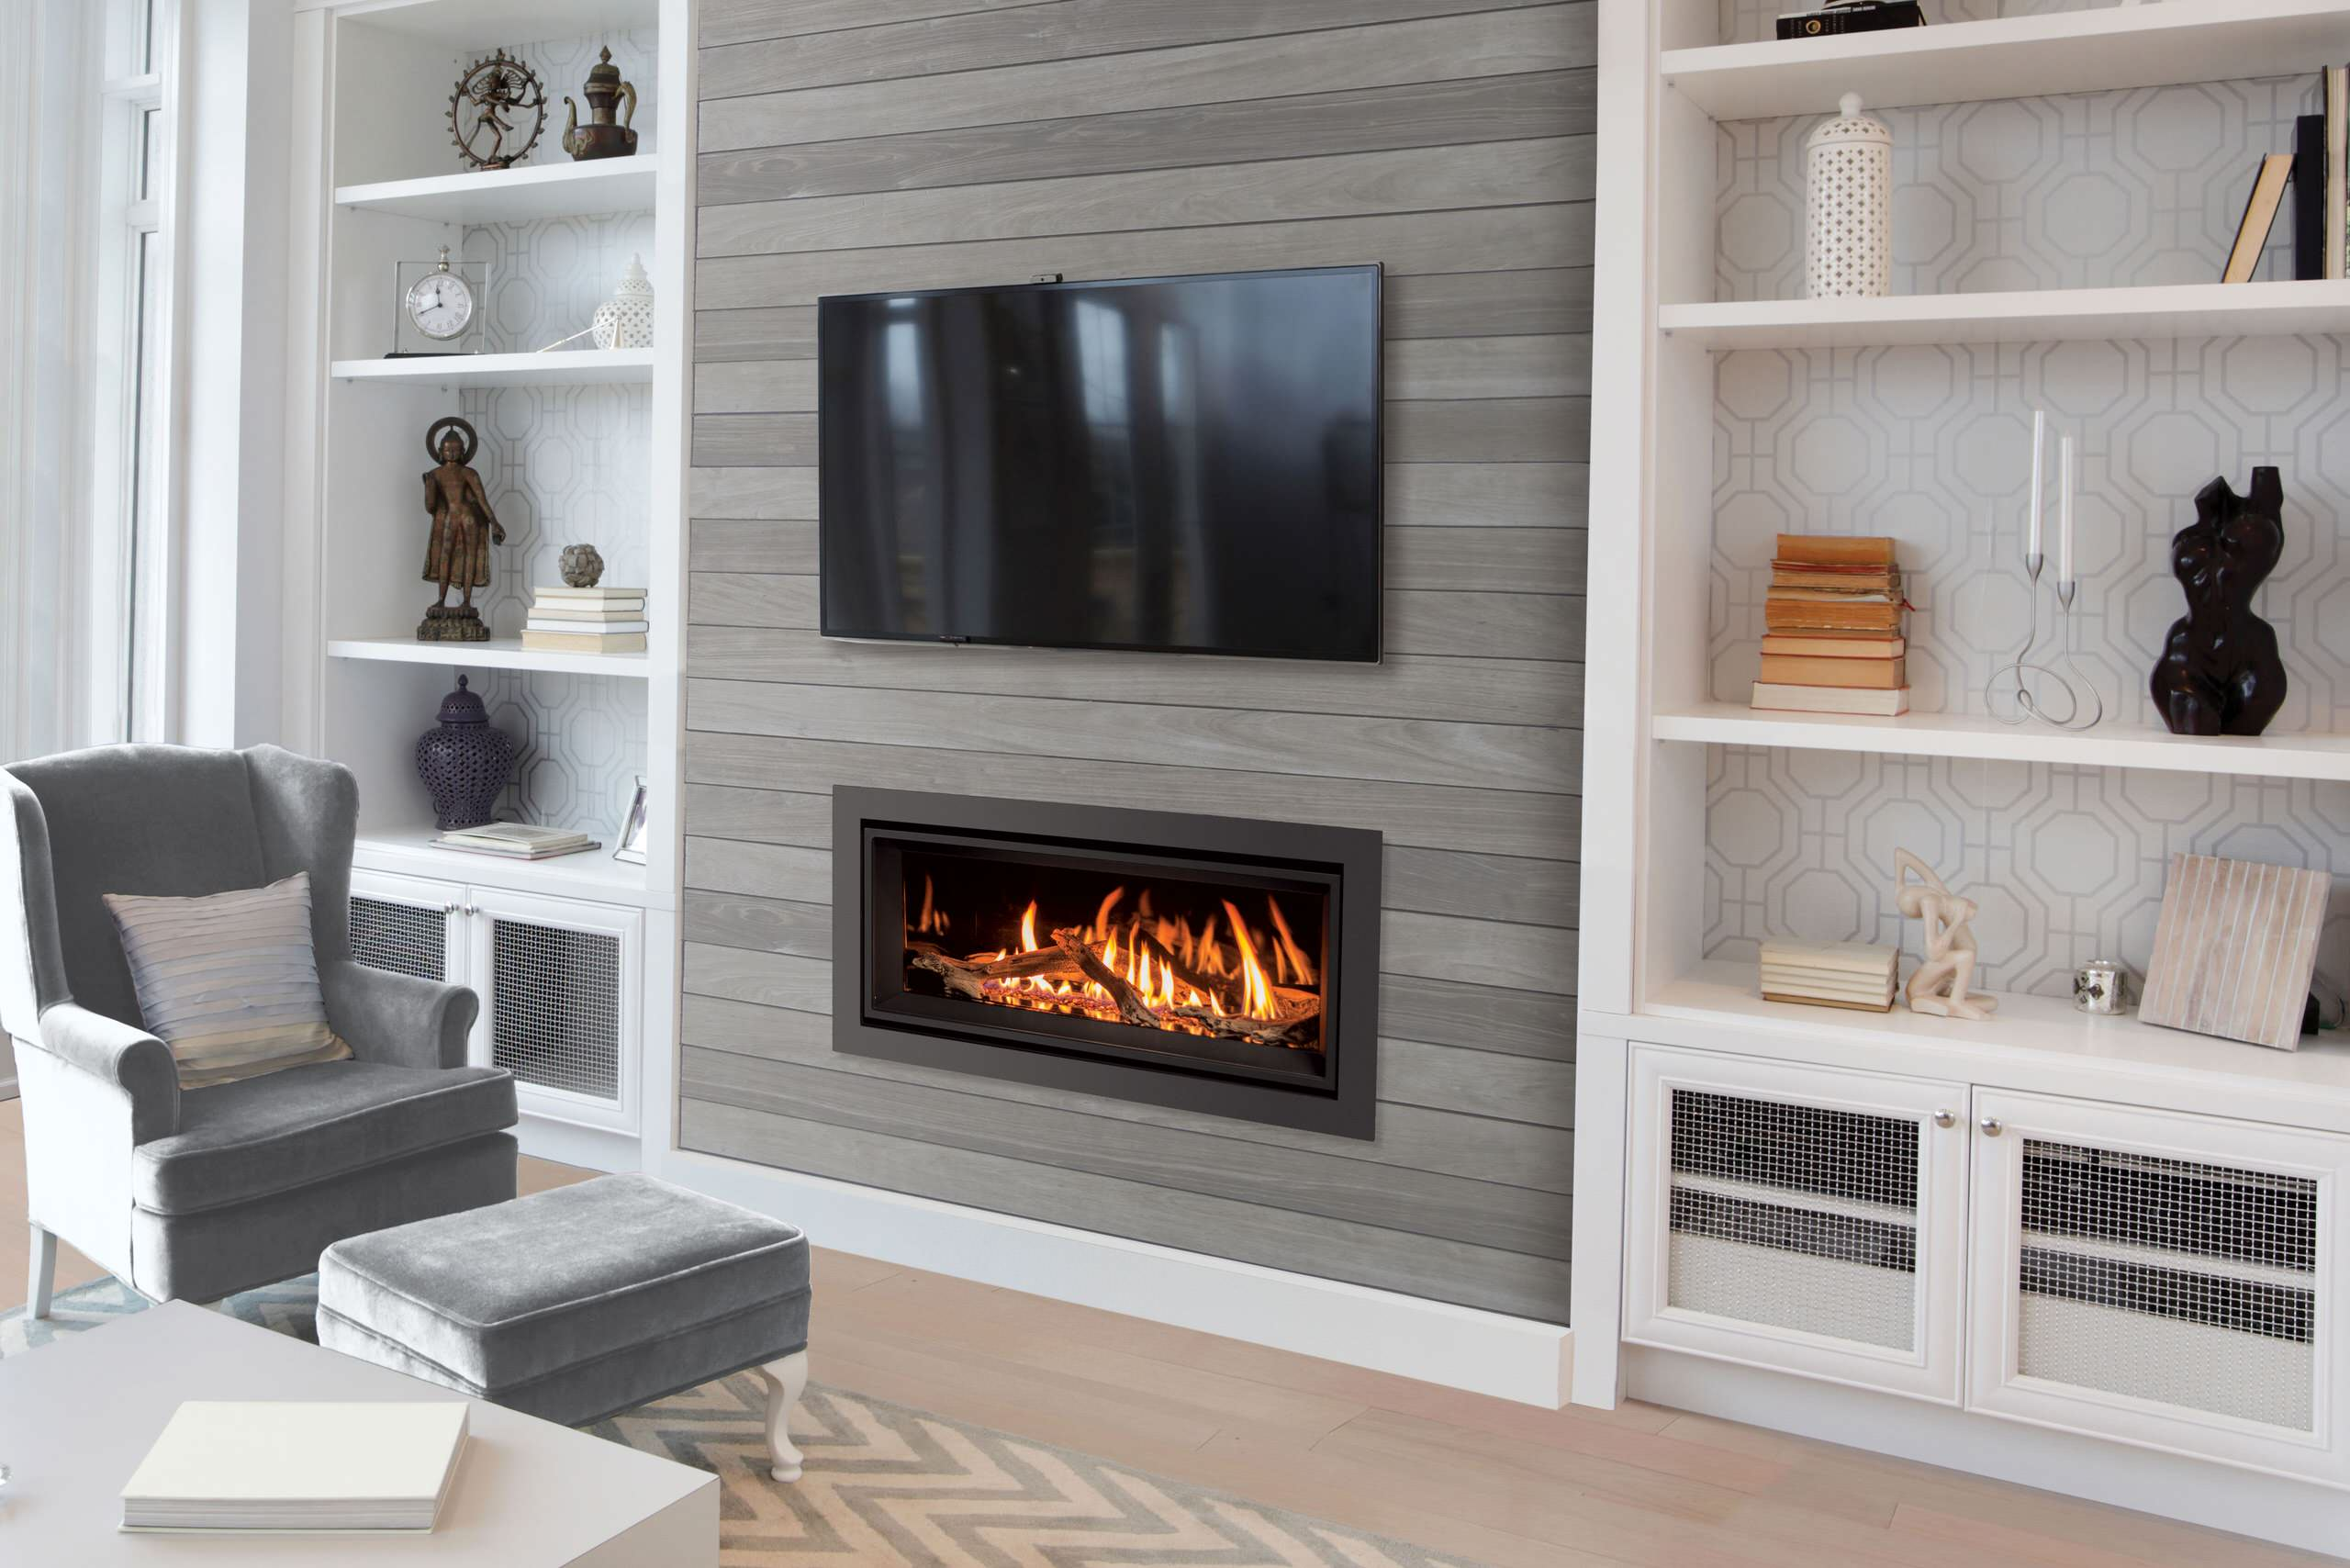 Buying A Gas Fireplace? 6 Of The Hotest Features To Look For